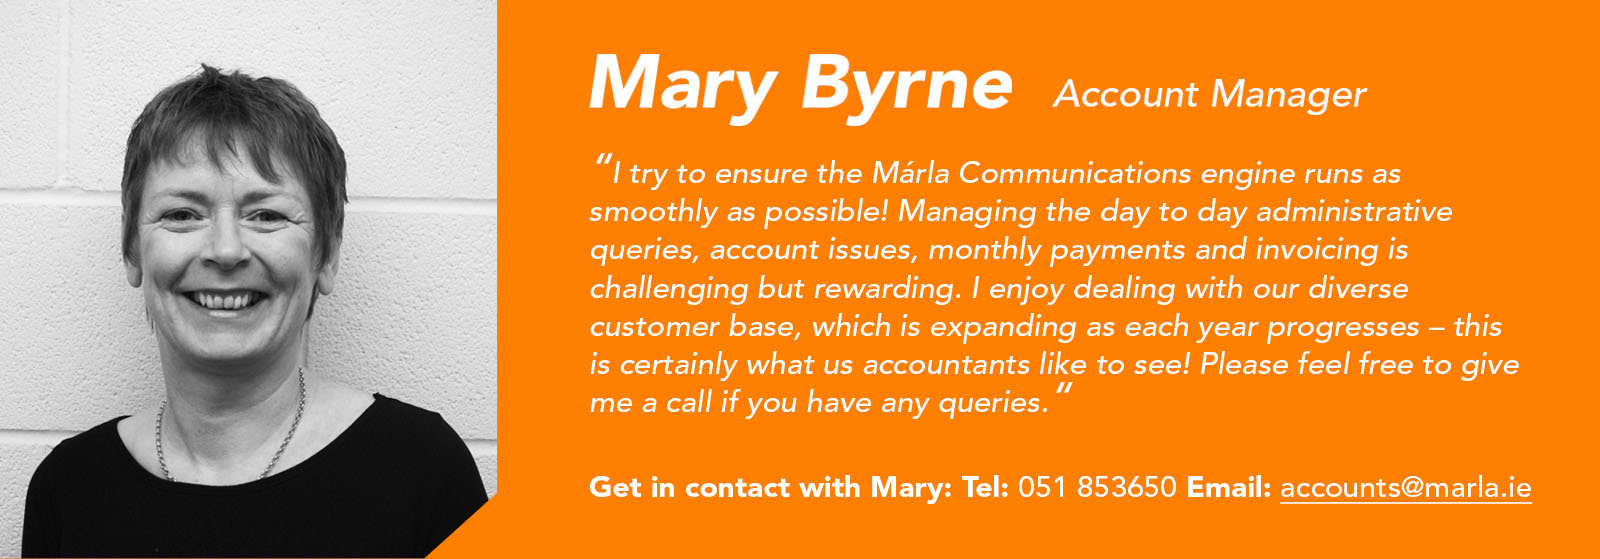 Mary Byrne - Accounts Manager - Márla Communications